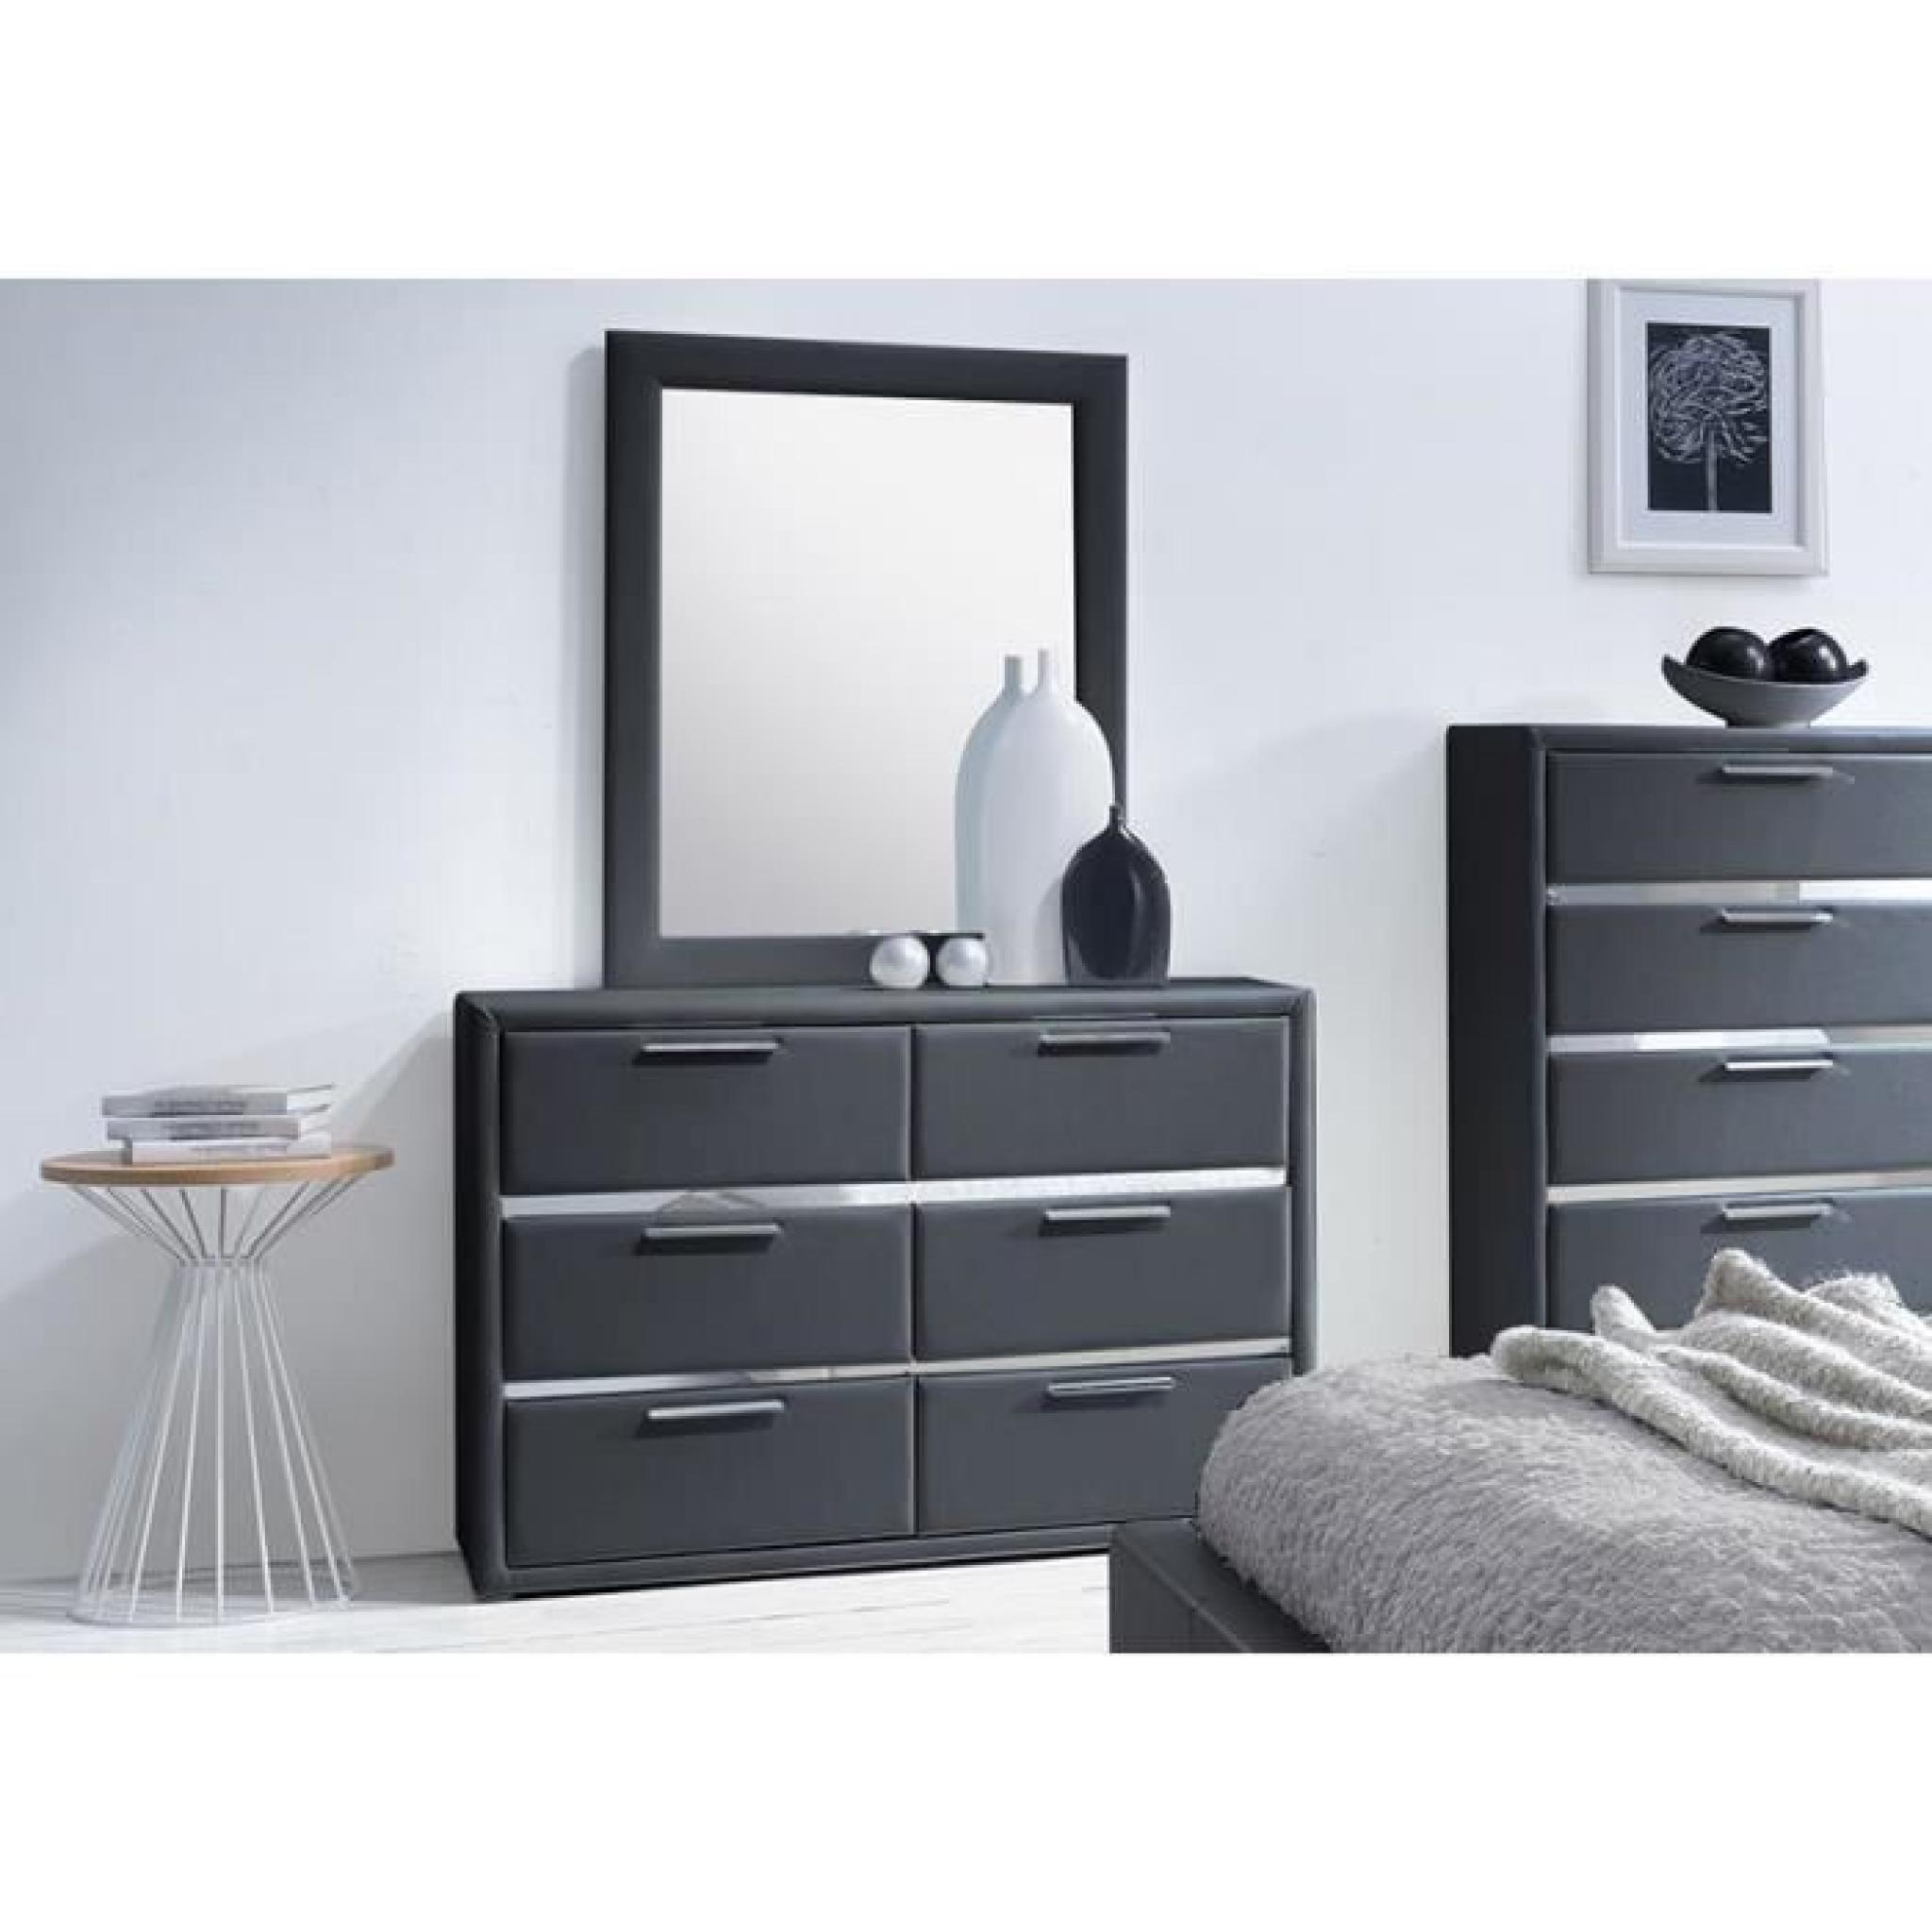 miroir de chambre pas cher. Black Bedroom Furniture Sets. Home Design Ideas